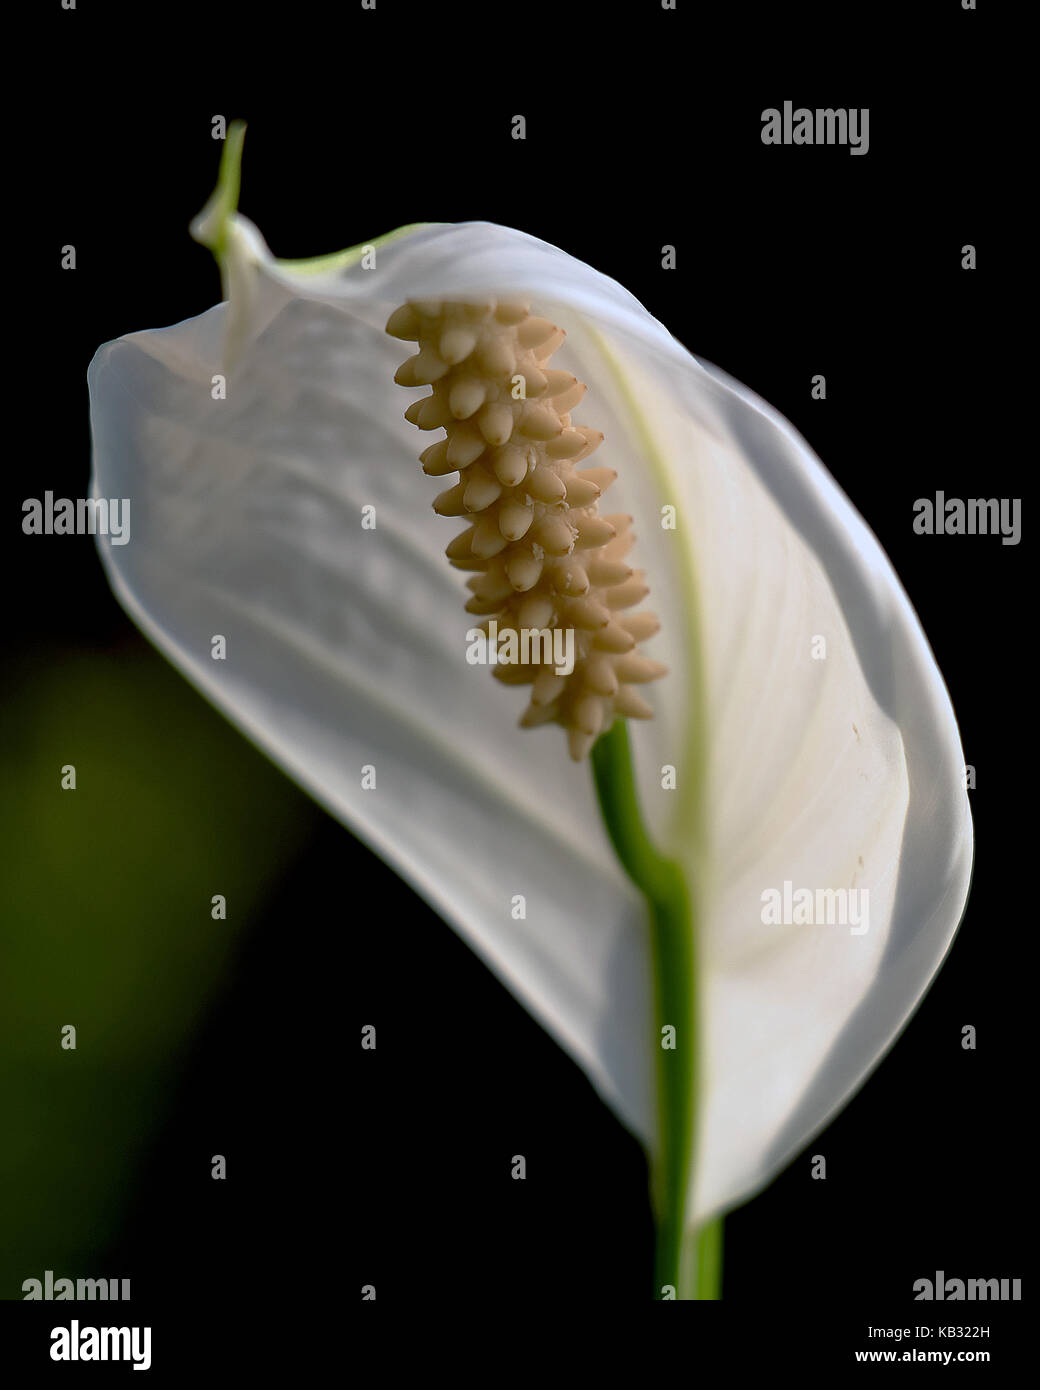 A close up of peace lily flower stock photos a close up of peace a close up of a spathiphyllum flower peace lily stock image izmirmasajfo